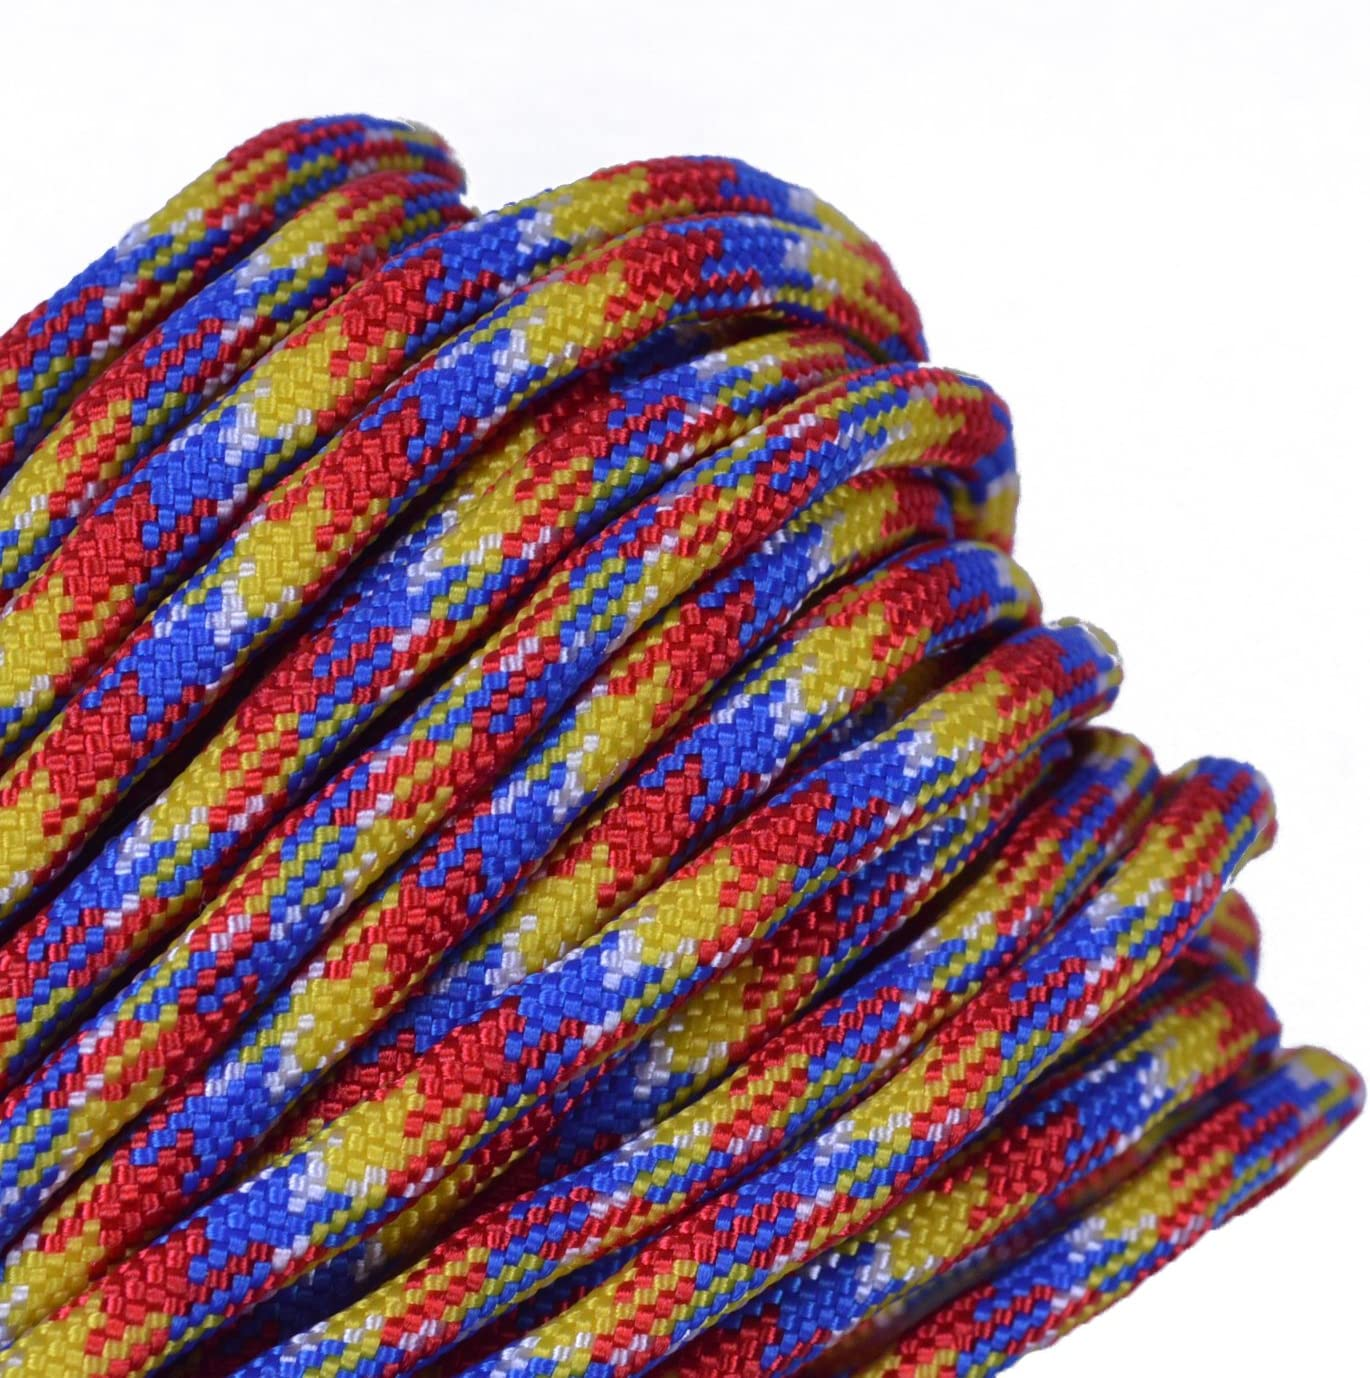 GWOT Parachute 550 Cord Type III 7 - Paracord 25 Strand Chicago Mall Foot OFFicial store